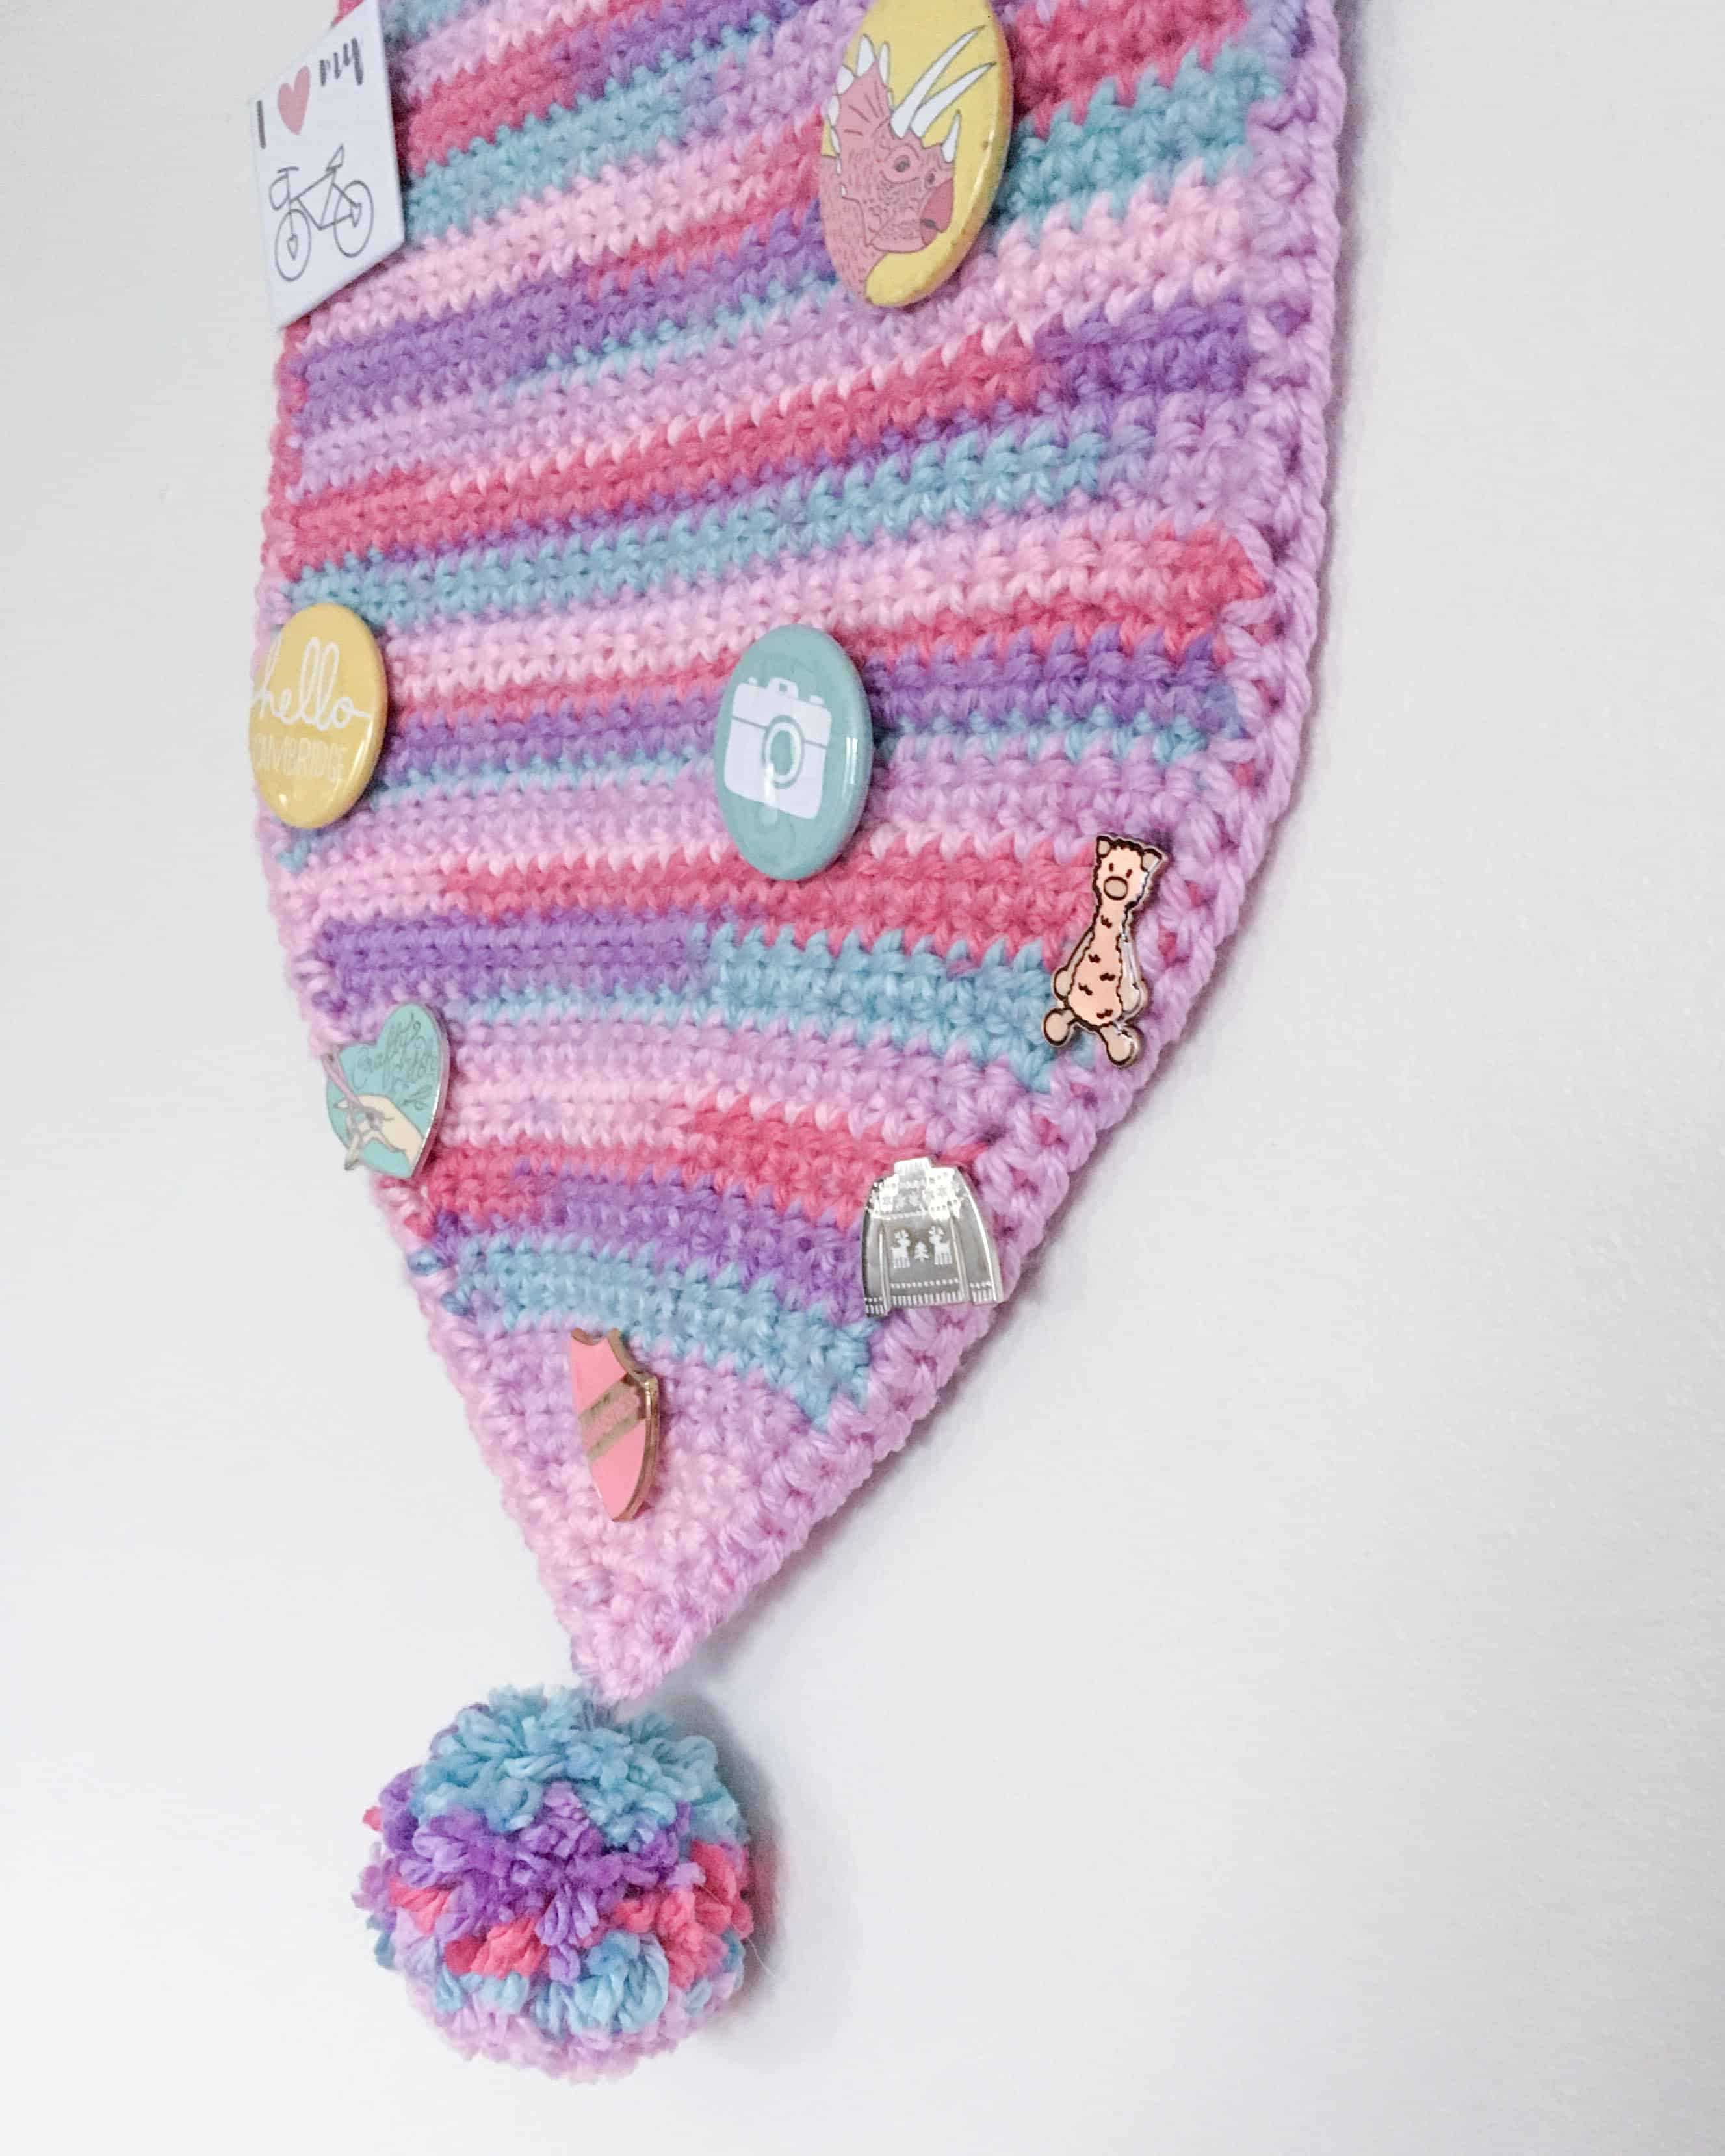 Get Your Pin On Crochet A Pin Banner Dora Does